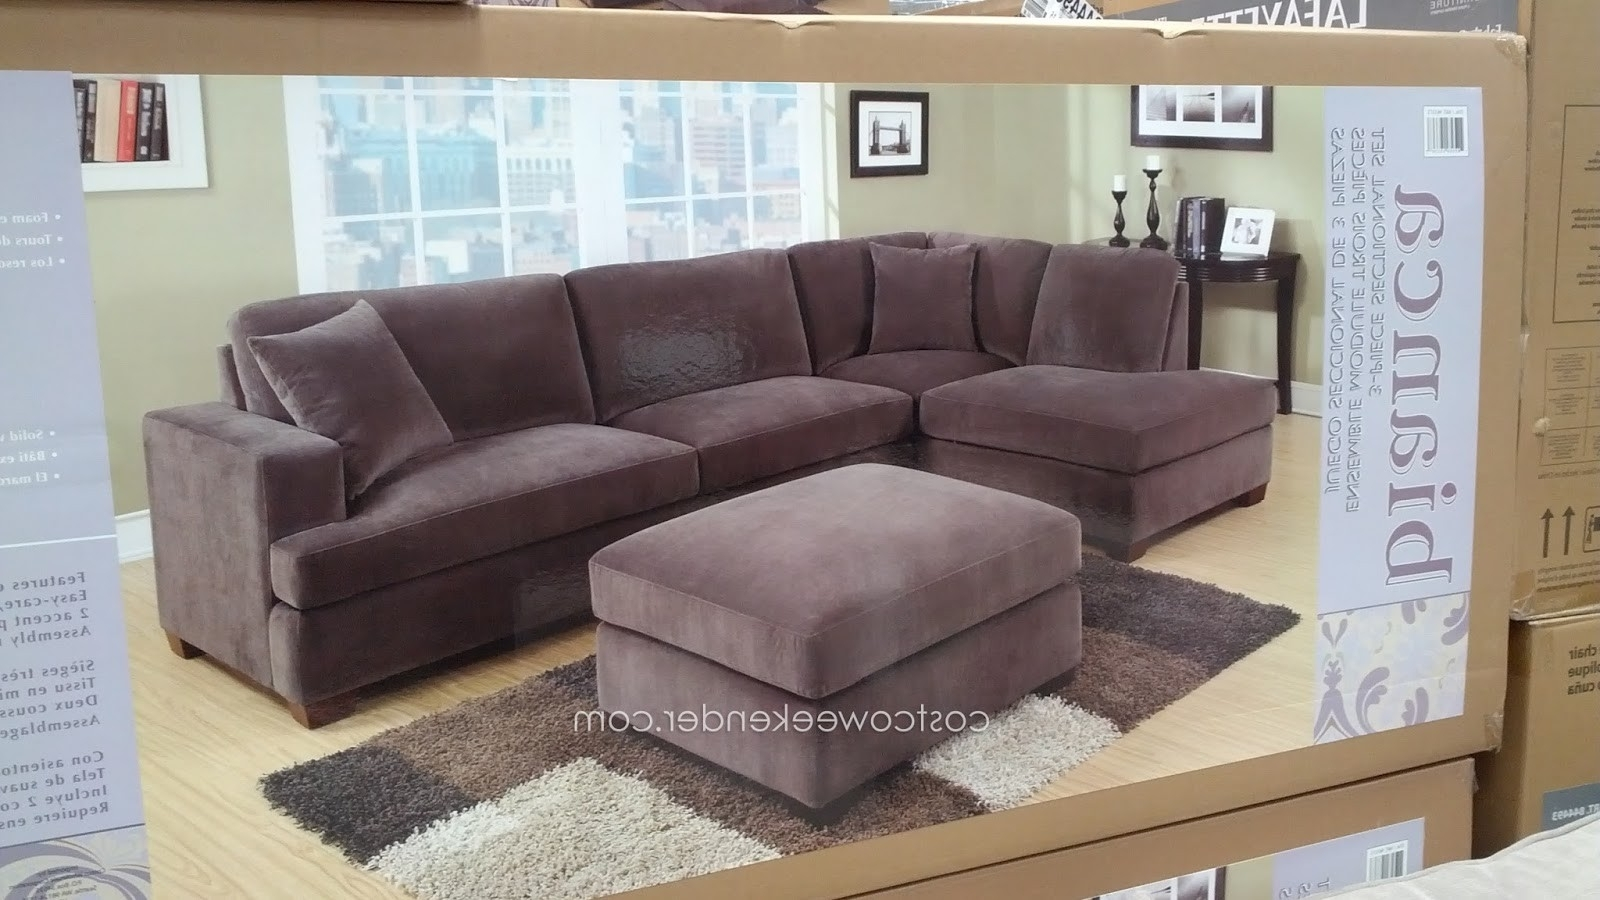 2017 Elegant Emerald Sectional Sofa – Mediasupload With Regard To Home Furniture Sectional Sofas (View 1 of 15)